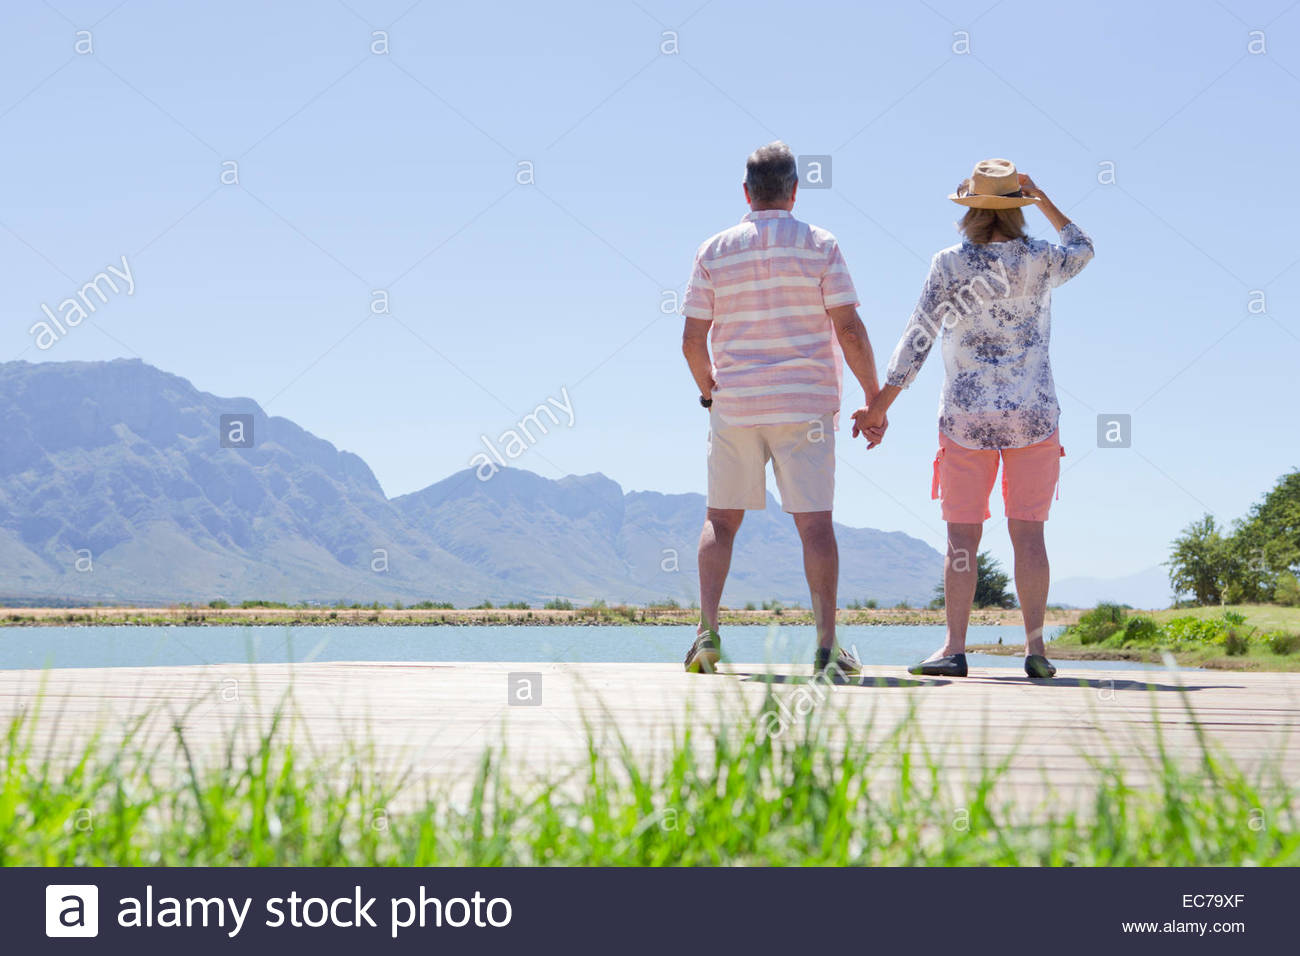 Senior couple standing hand-in-hand on jetty looking at lake - Stock Image